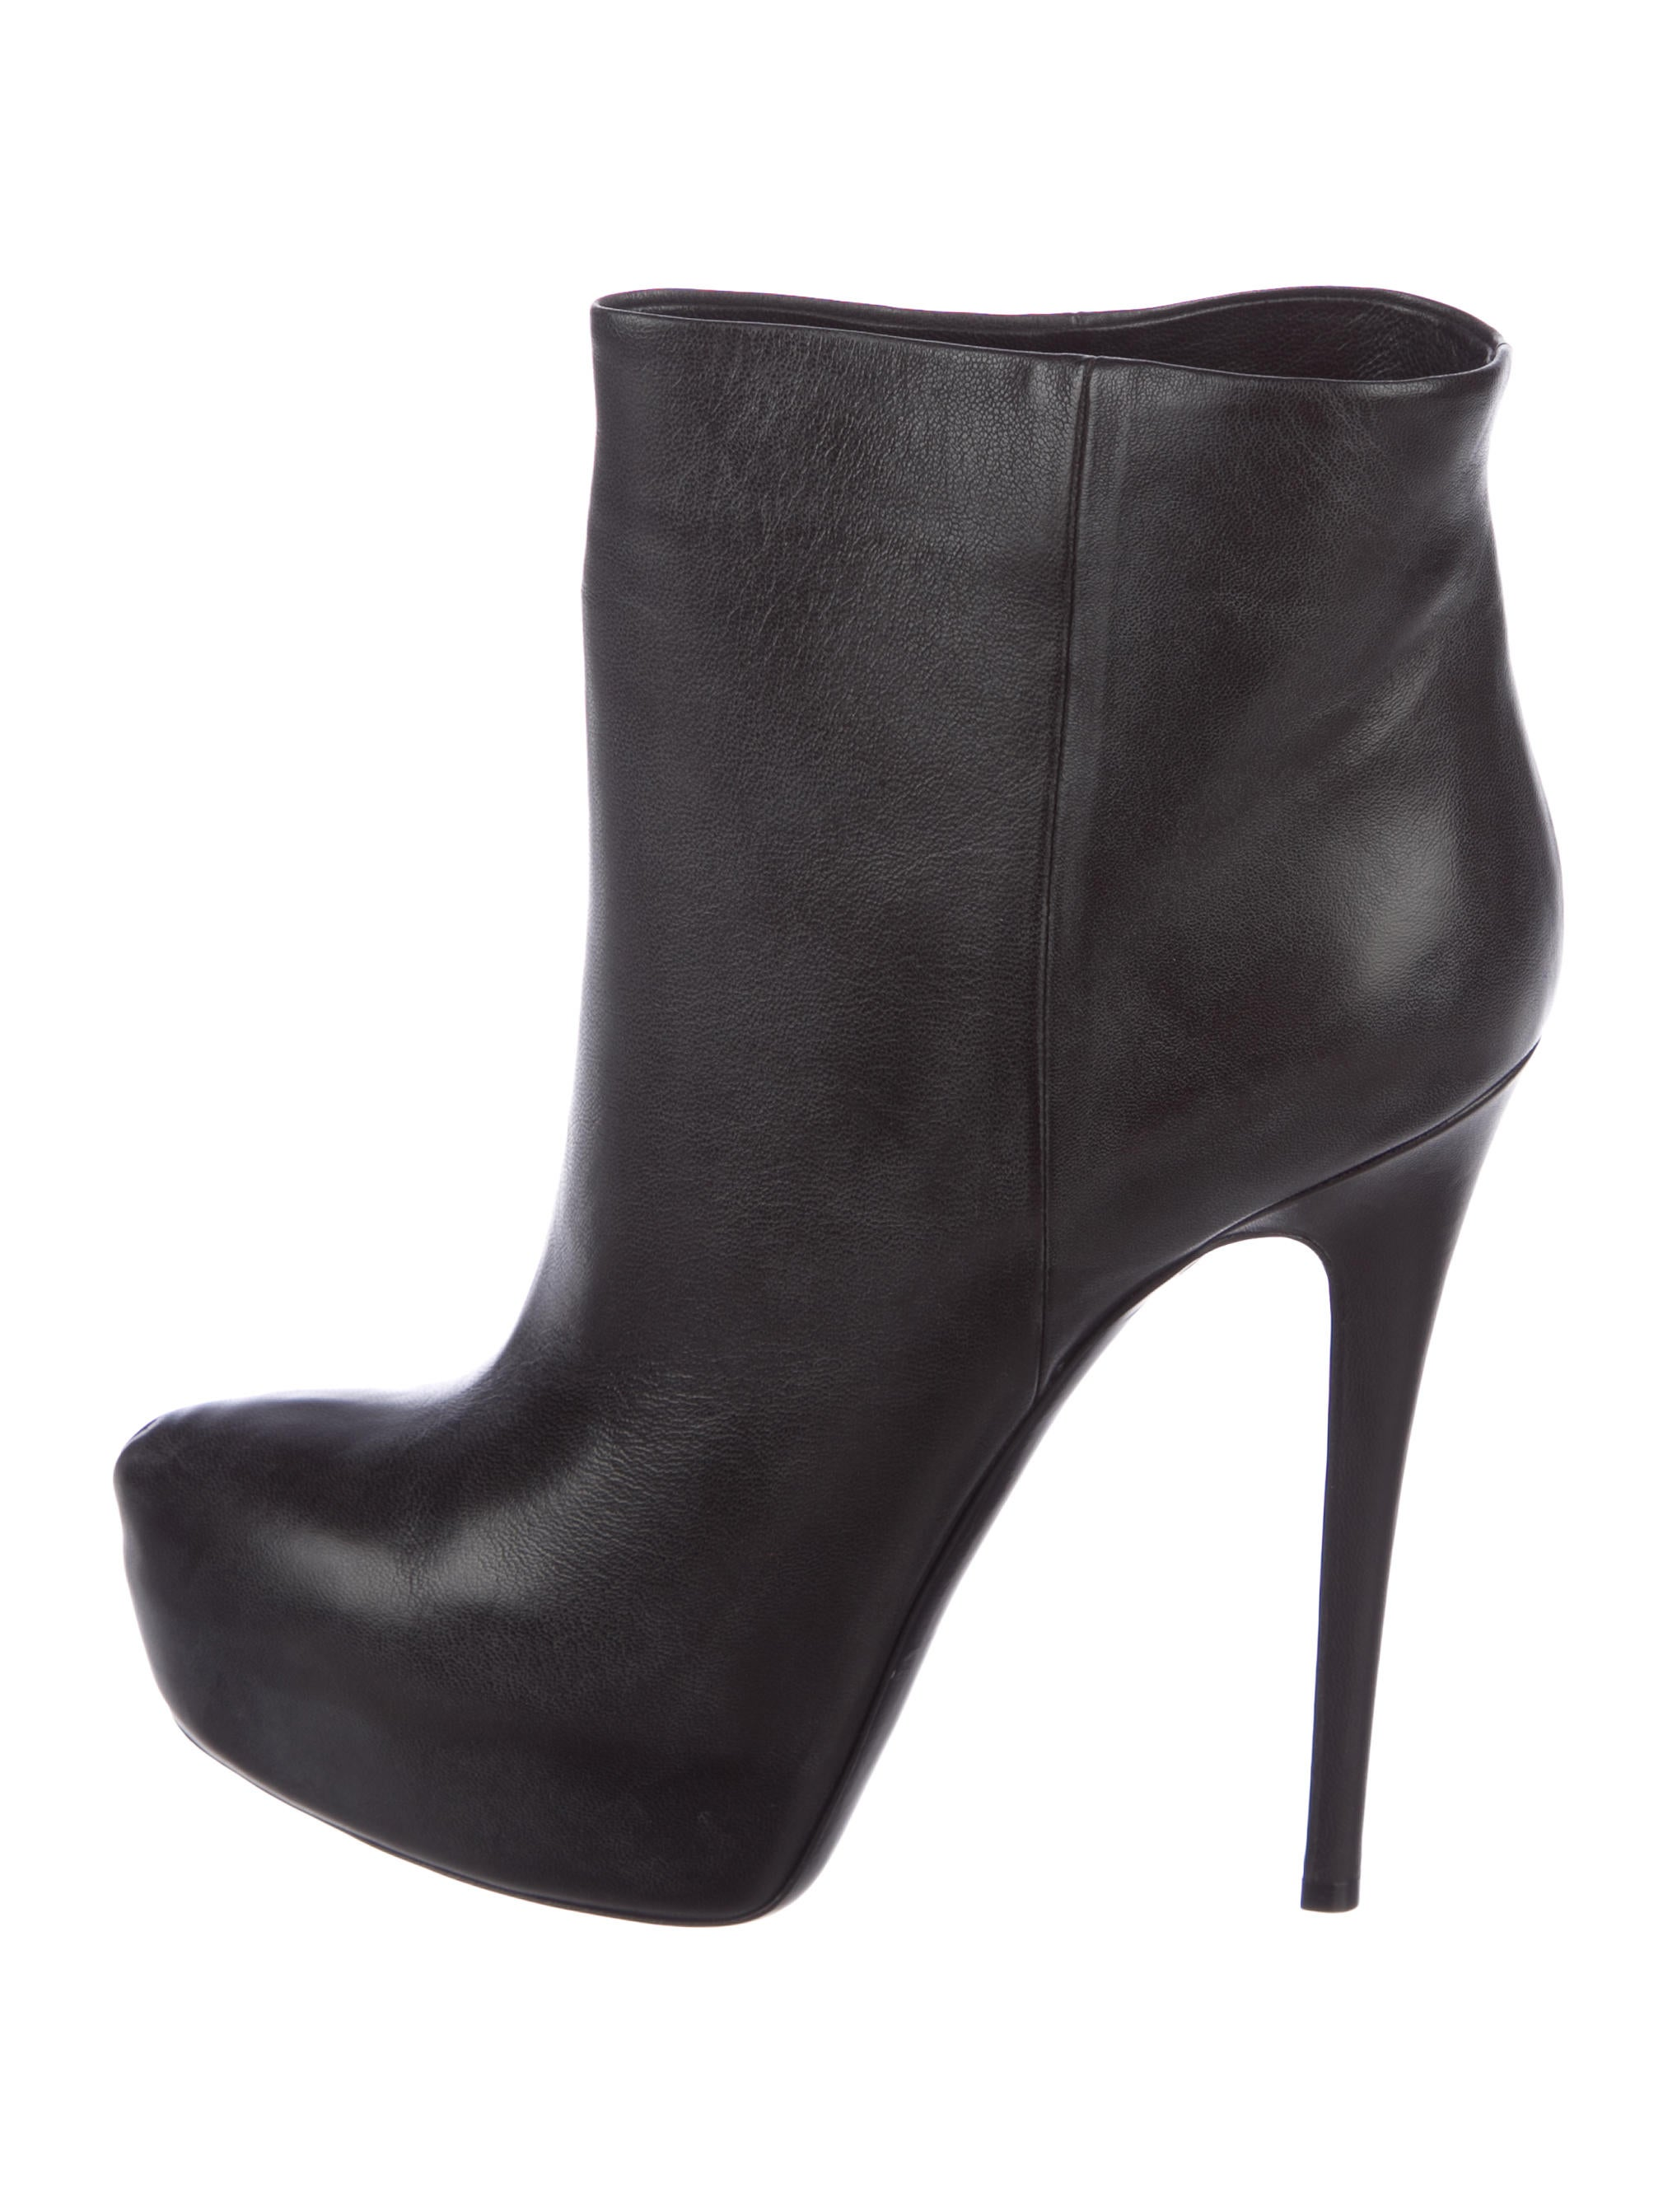 Ballin Classic Leather Platform Ankle Boots amazon sale online fast delivery for sale IzRDZhU